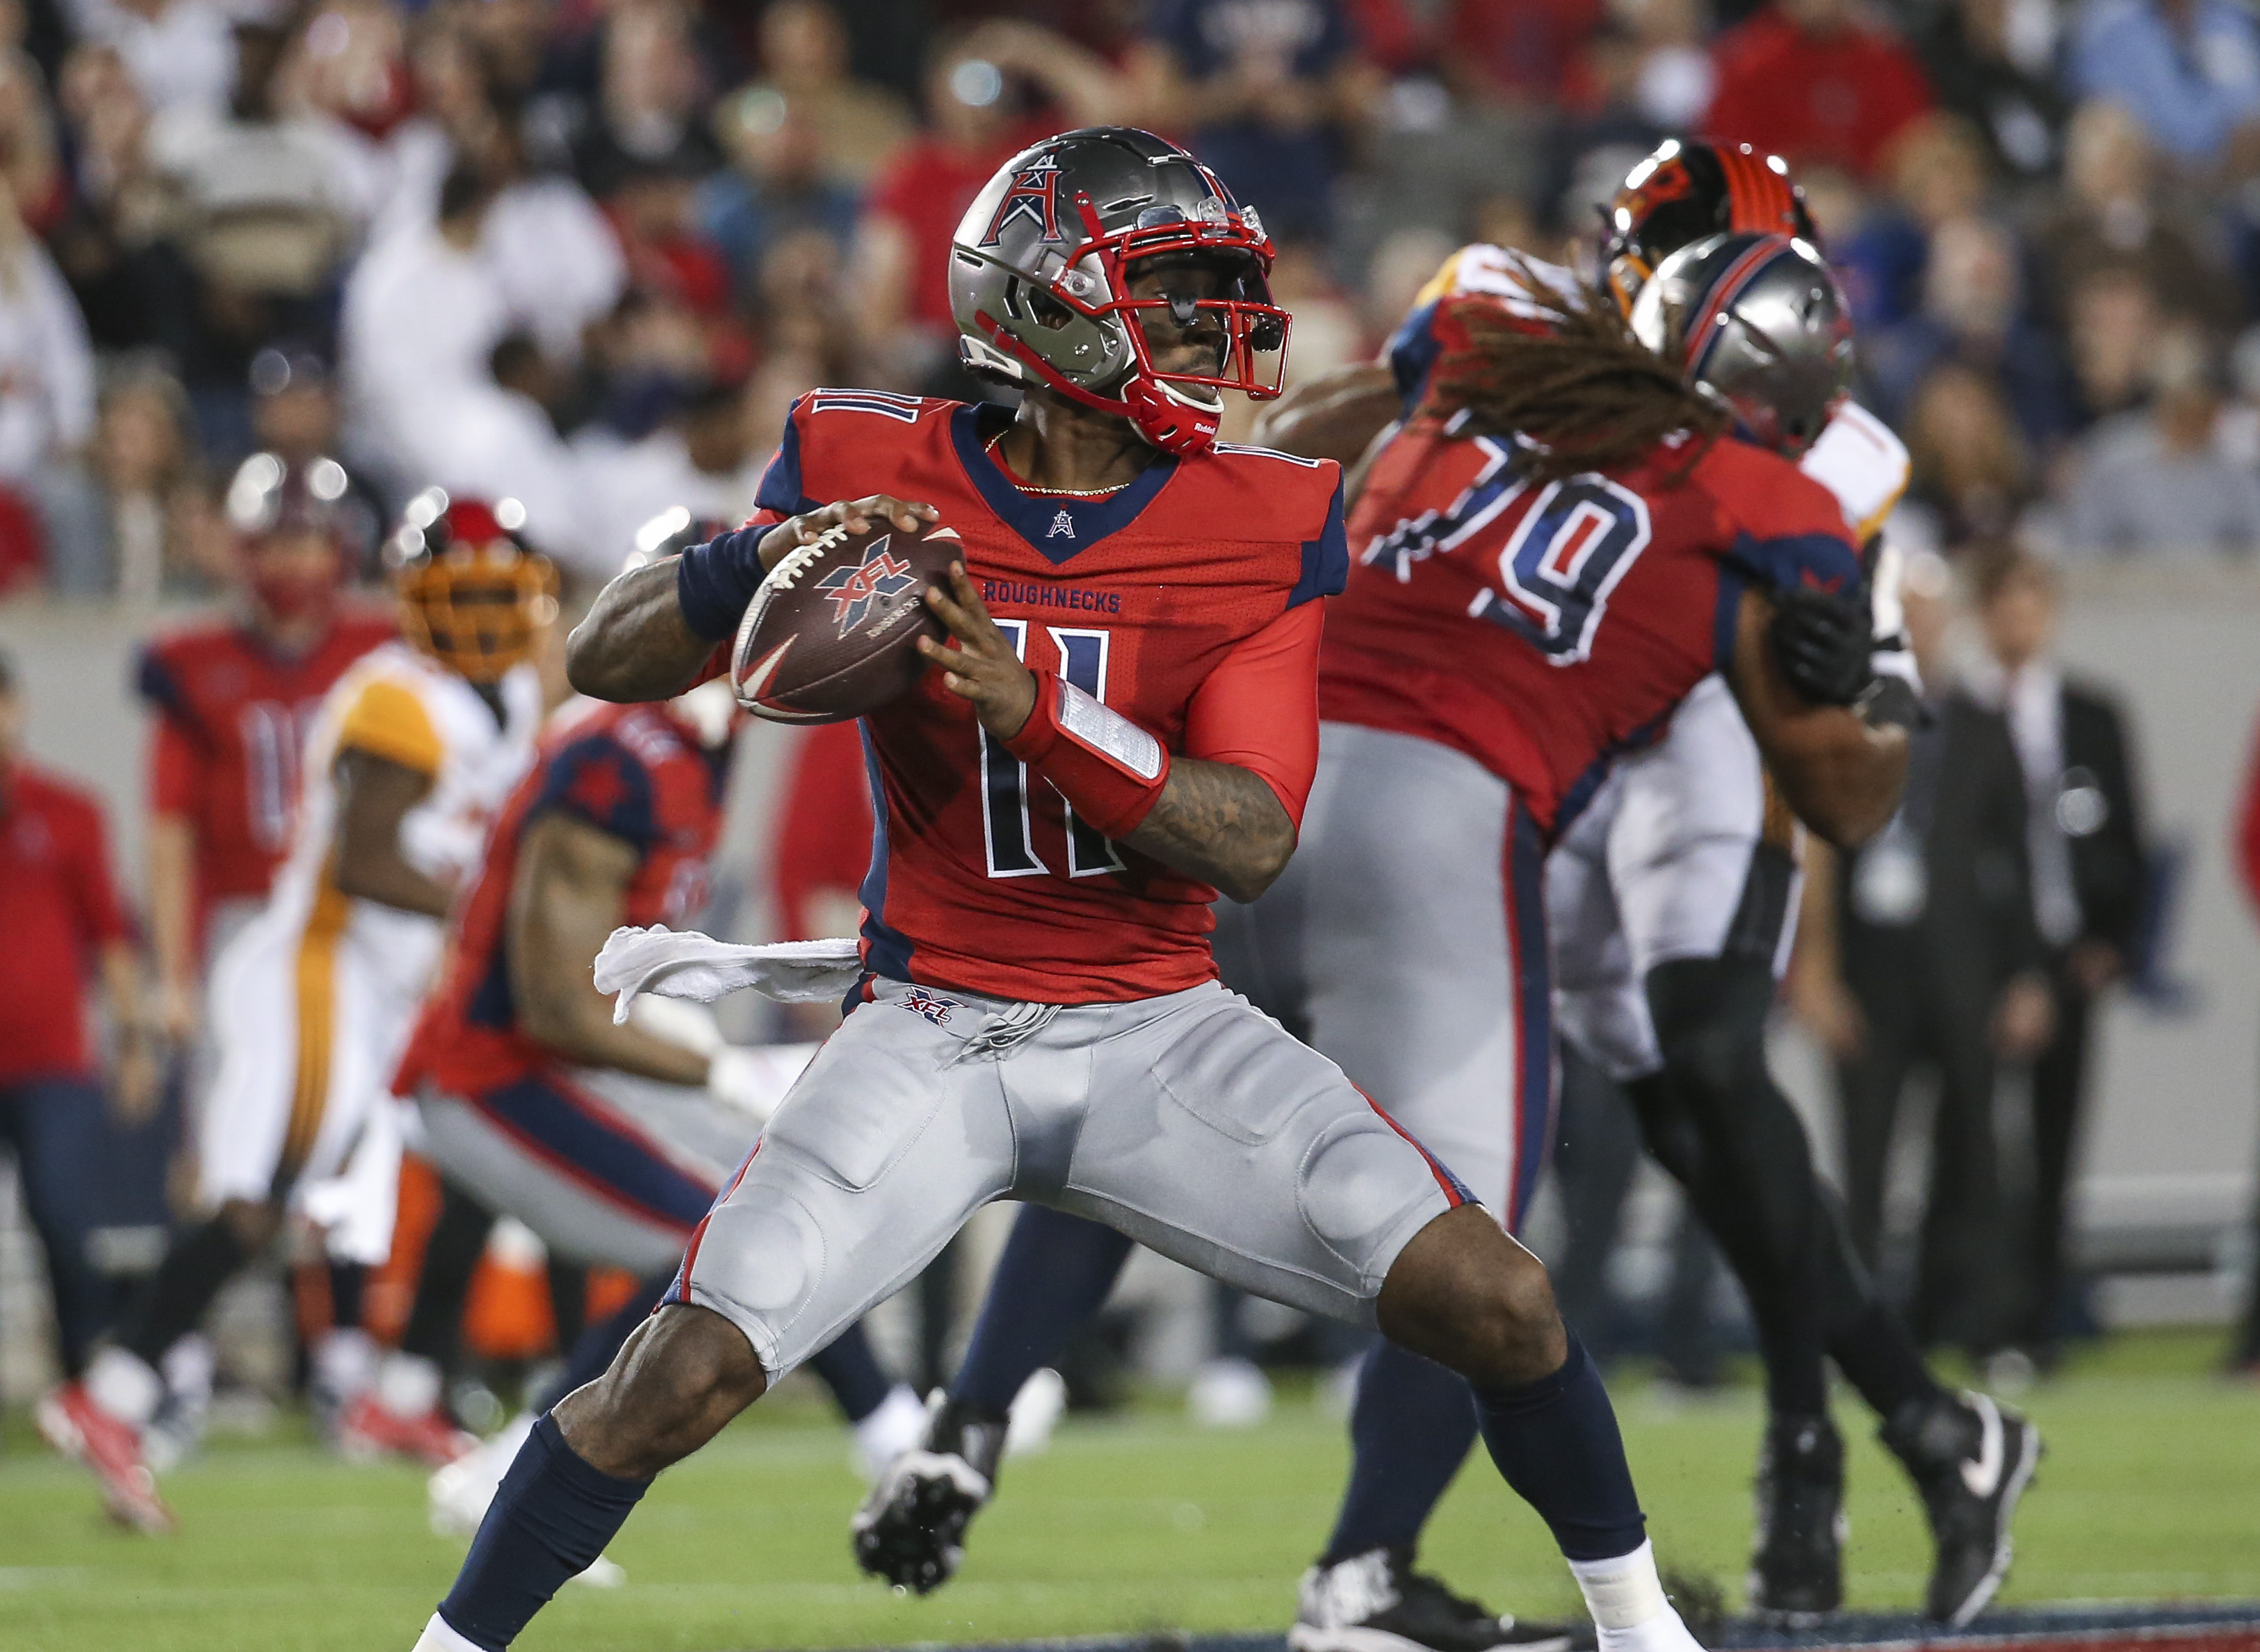 Houston Roughnecks quarterback P.J. Walker drops back to pass against the Los Angeles Wildcats during the third quarter in a XFL football game at TDECU Stadium.